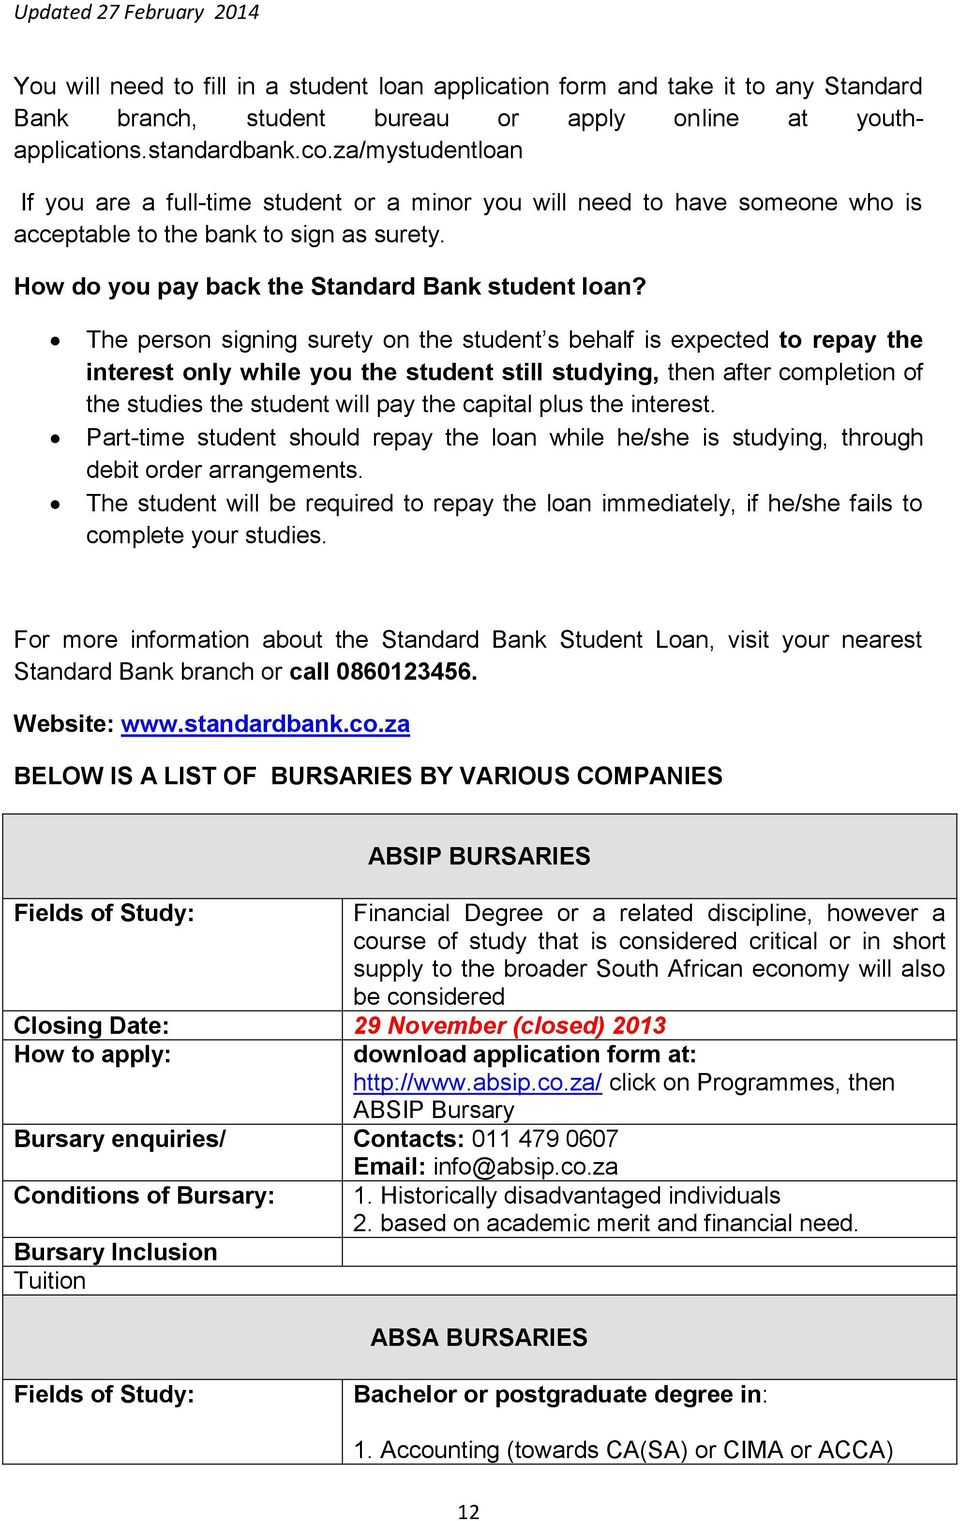 The person signing surety on the student s behalf is expected to repay the interest only while you the student still studying, then after completion of the studies the student will pay the capital